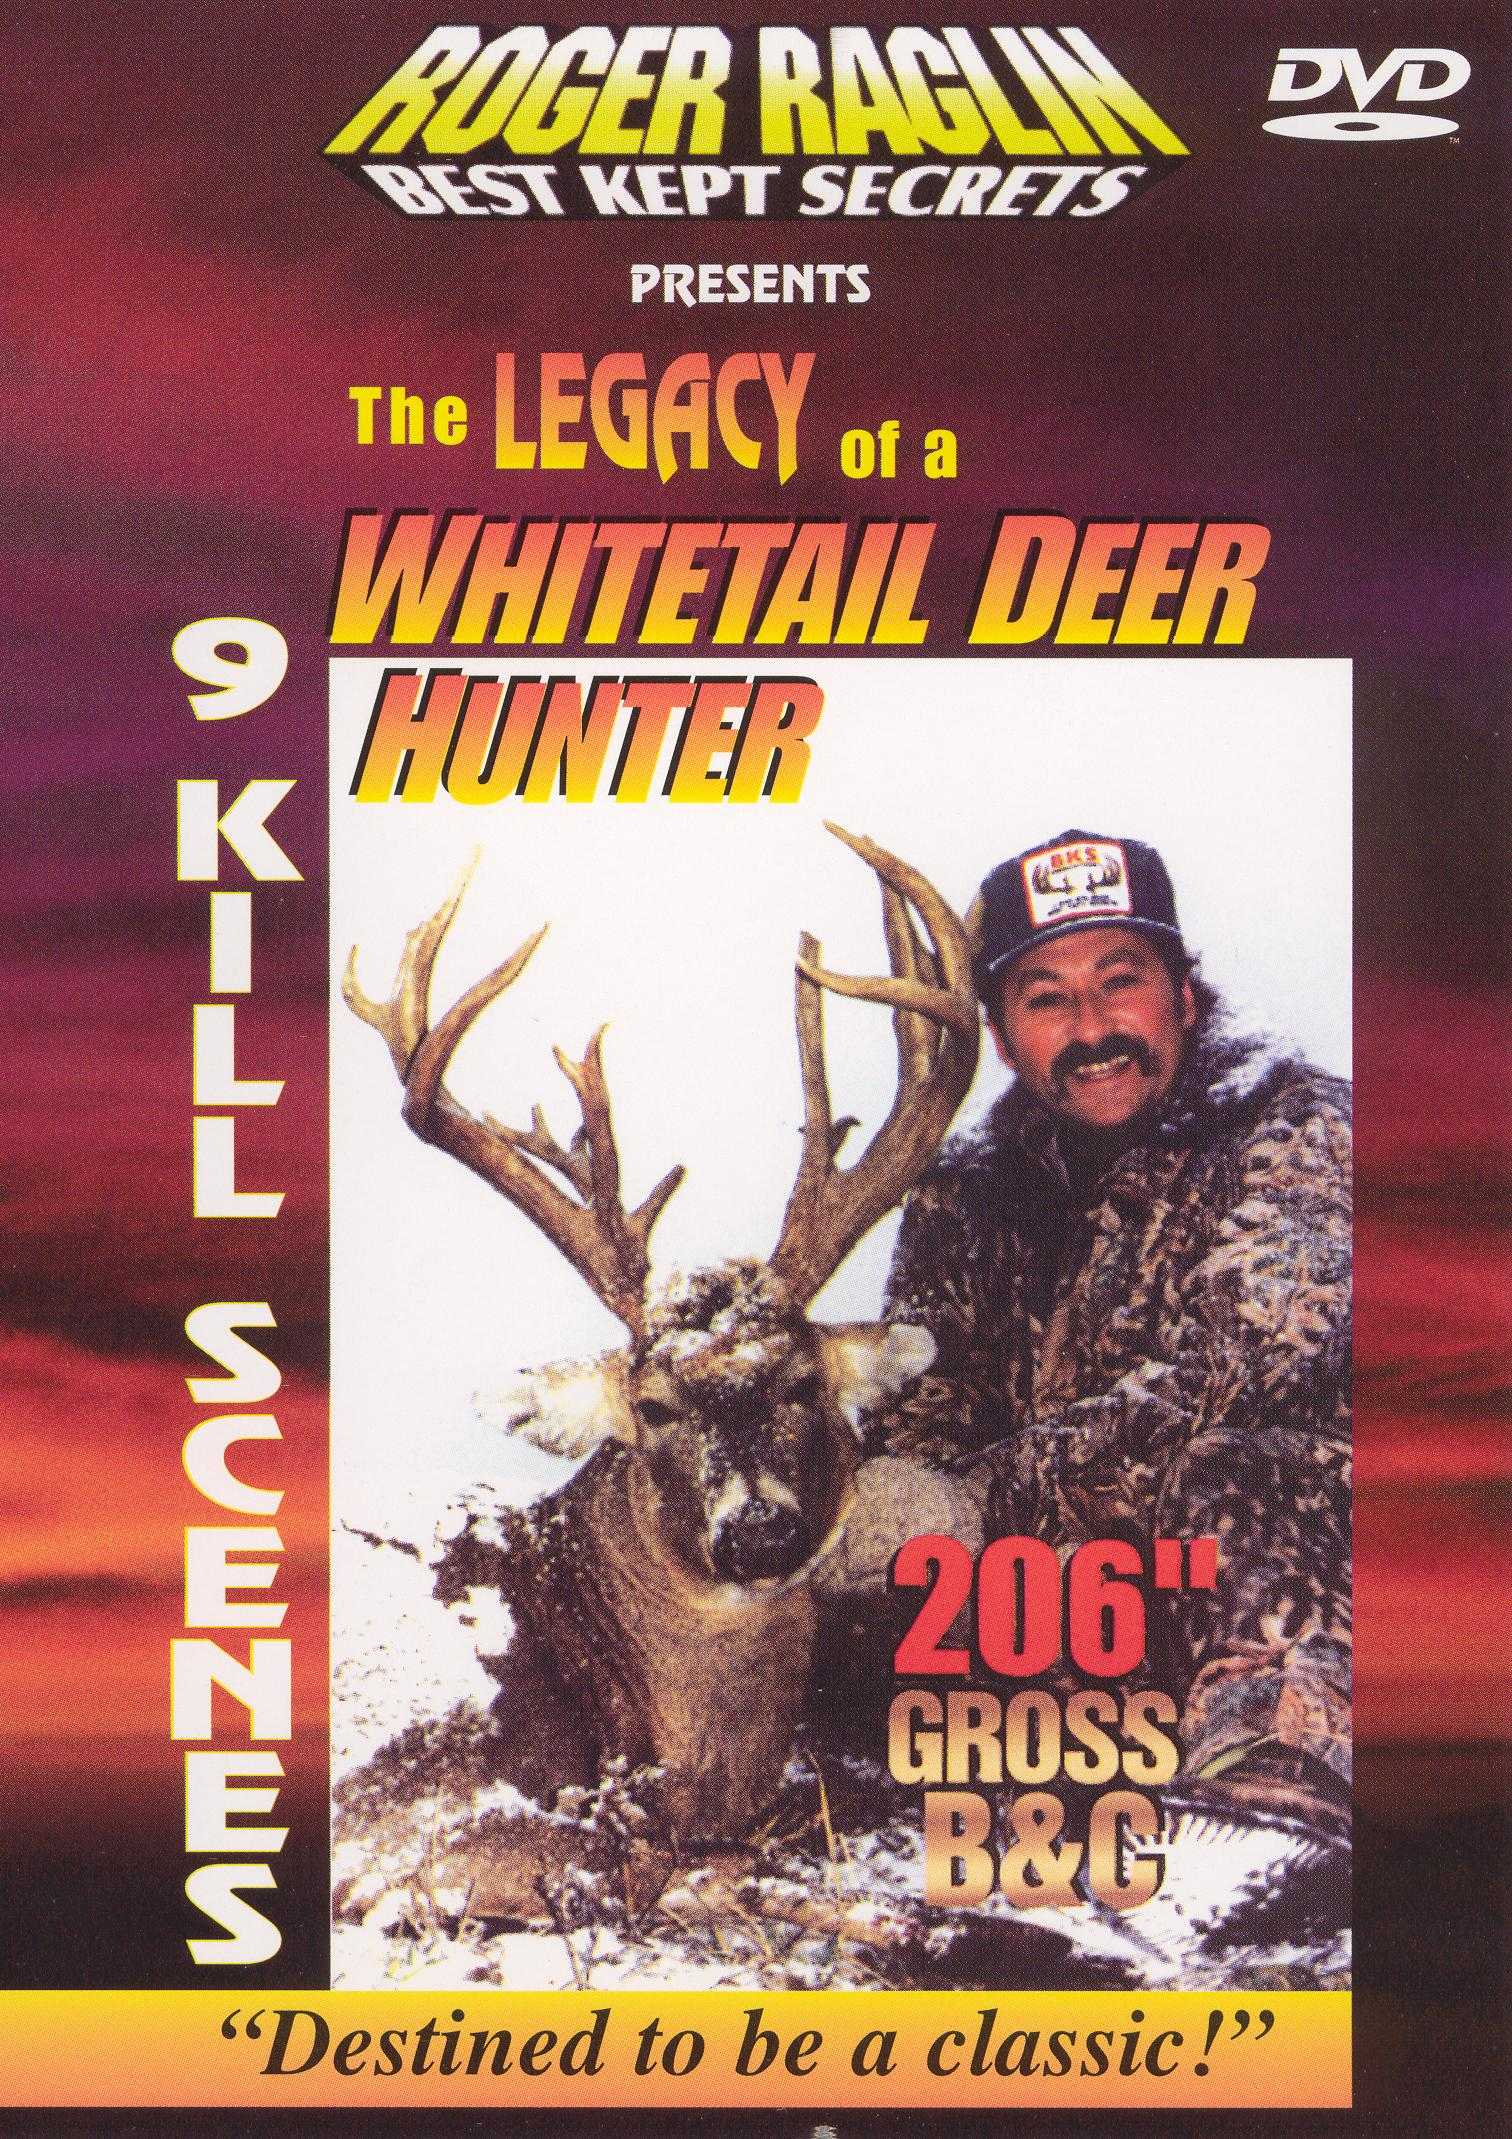 Roger Raglin: Best Kept Secrets - Legacy of a Whitetail Deer Hunter